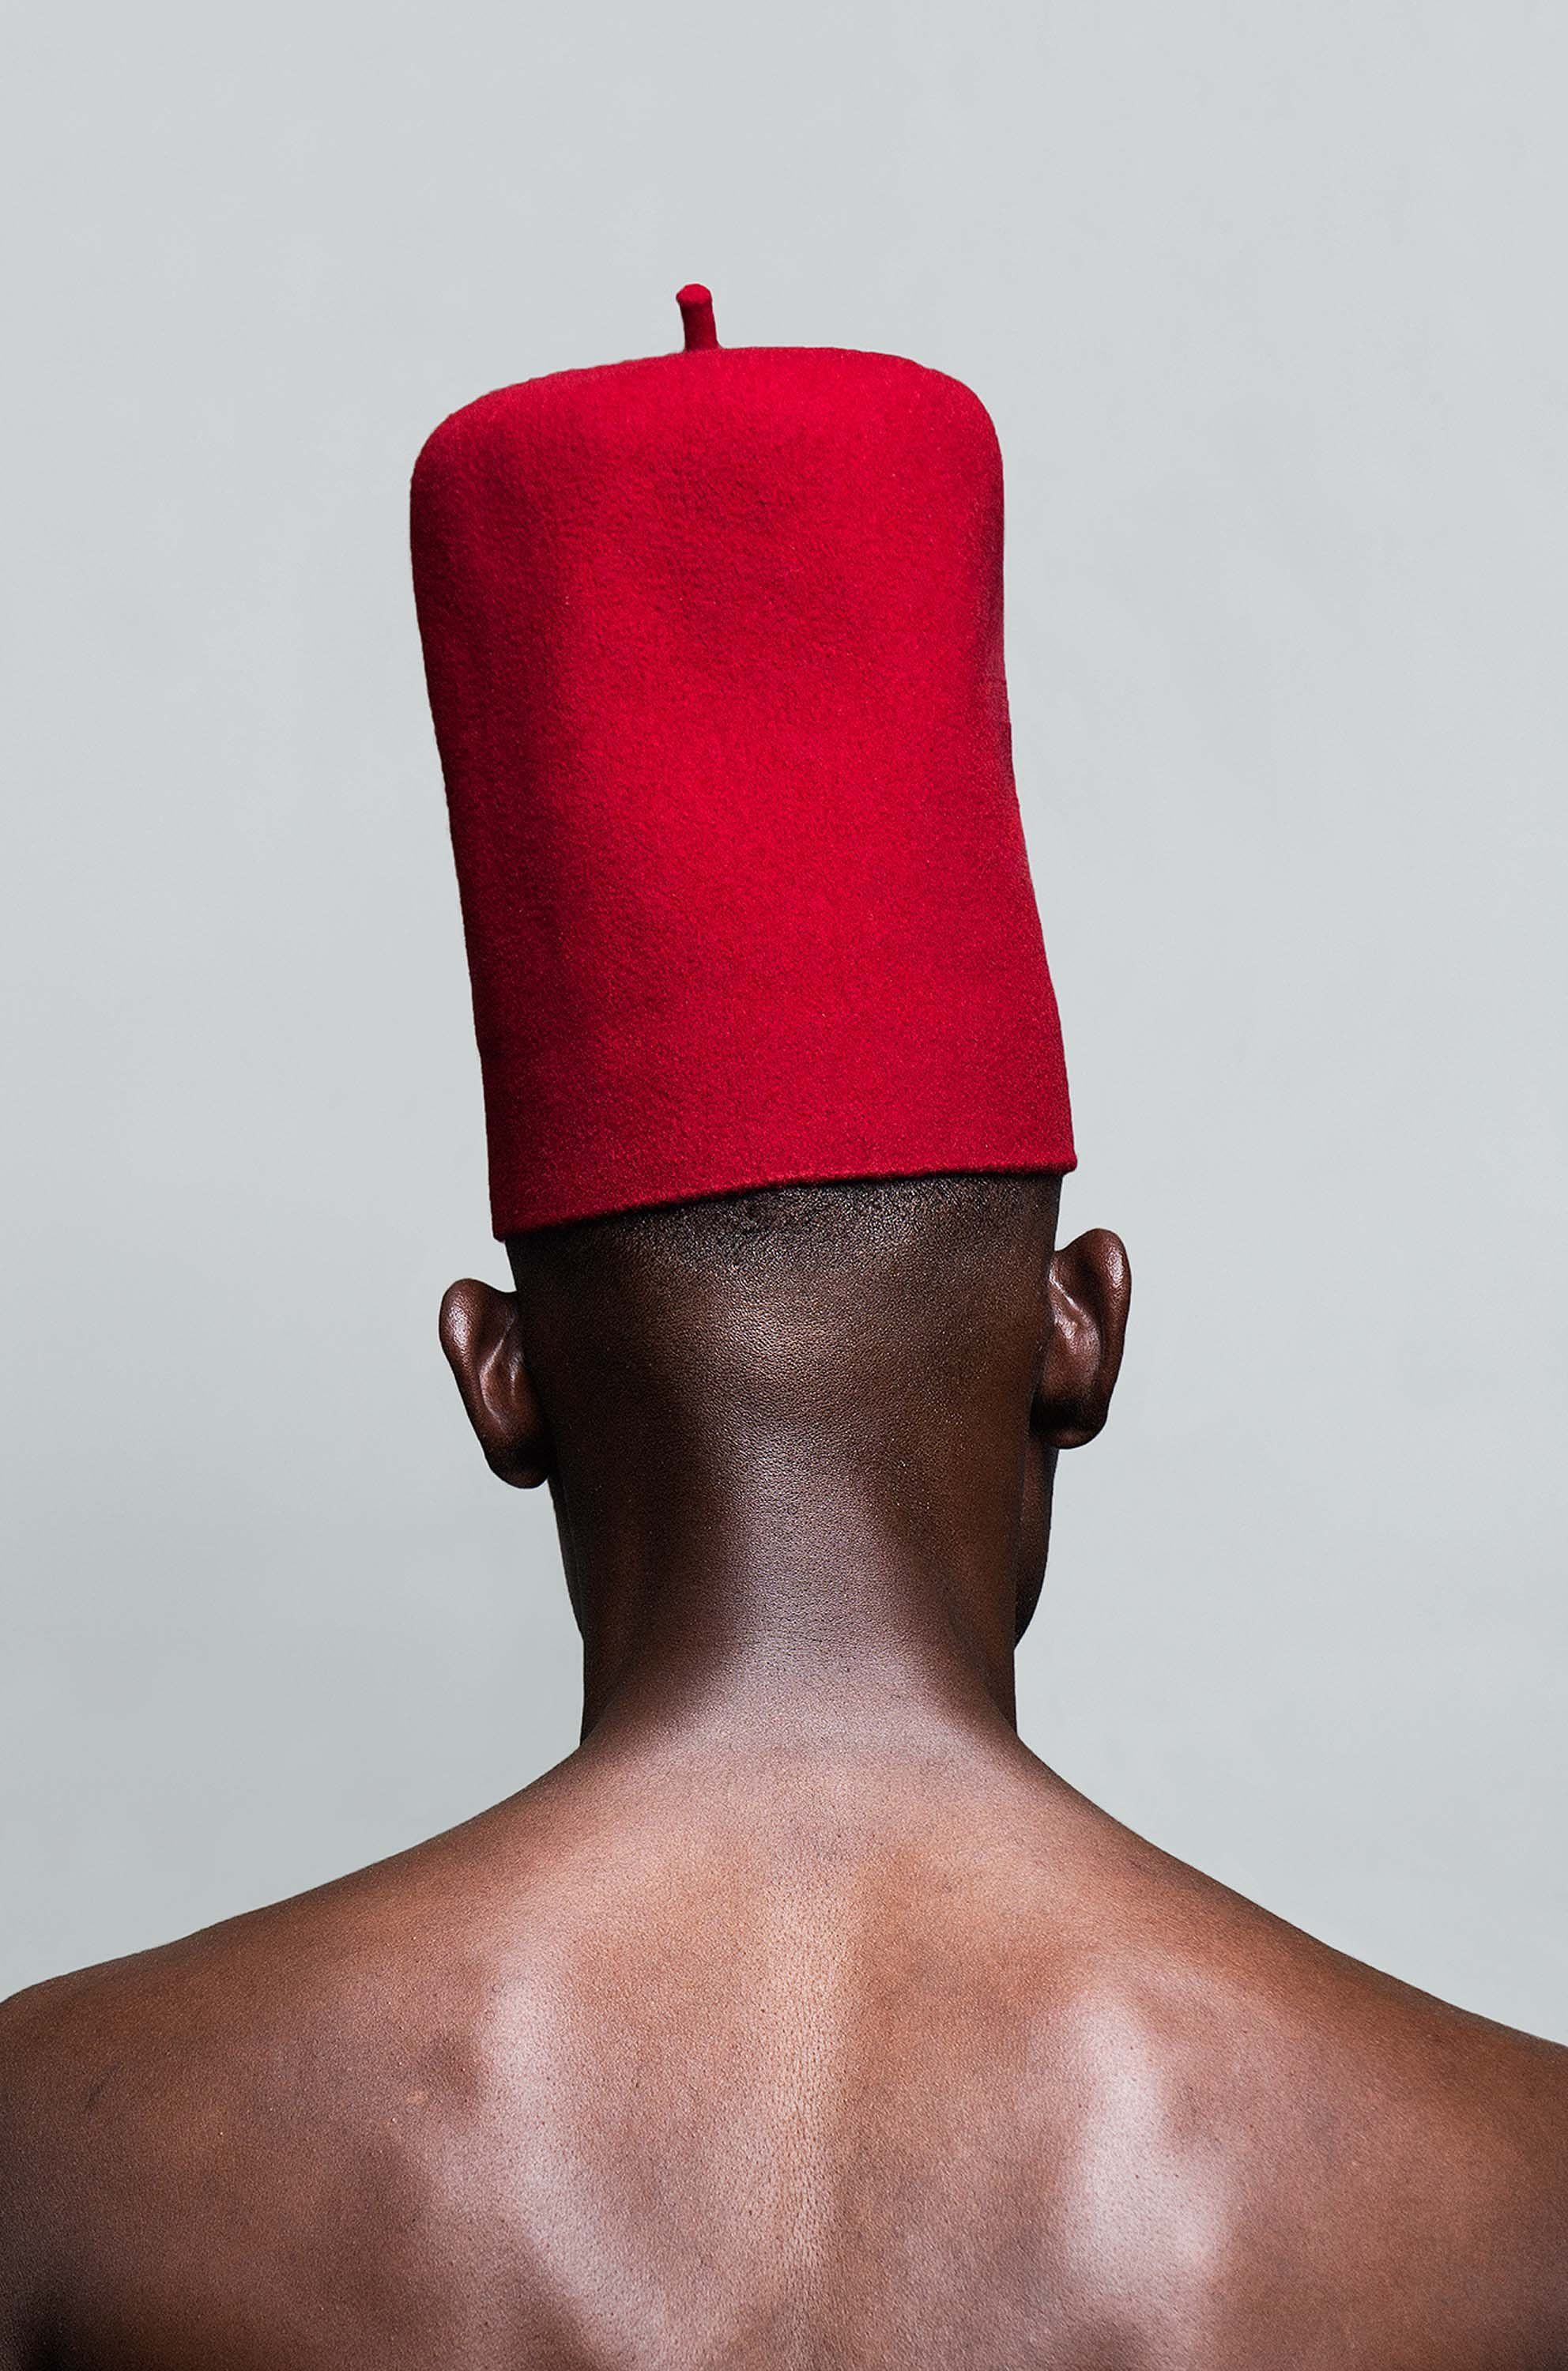 In Nigeria, Does the Hat Make the Man? A New Photo Series Poses the Question